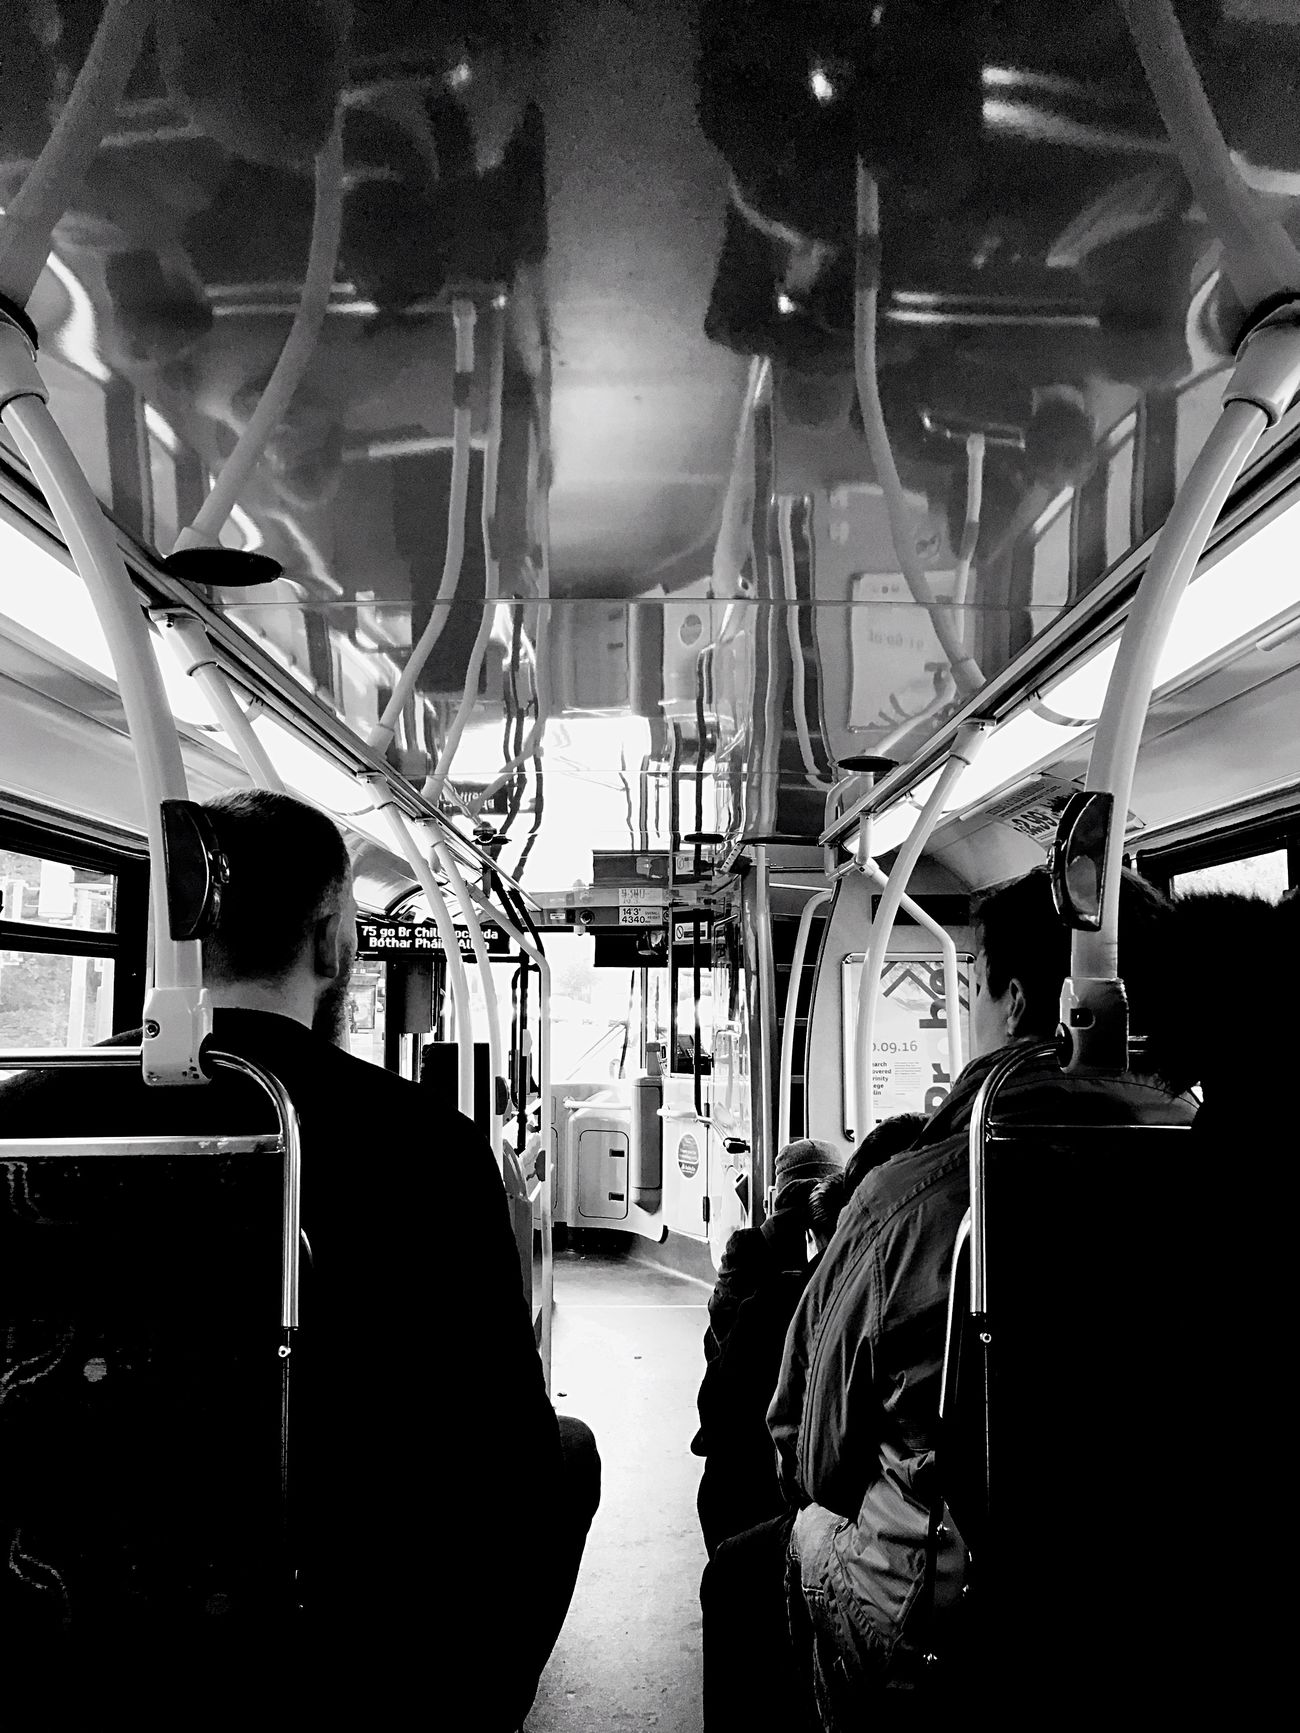 Dublinbus Dublin Dublin, Ireland Mode Of Transport Transport Transport Photography Reflection Reflections Reflection_collection Ceiling Reflection People People Photography People Watching Blackandwhite Photography Black & White Black & White Photography IPhoneography Iphonephotography